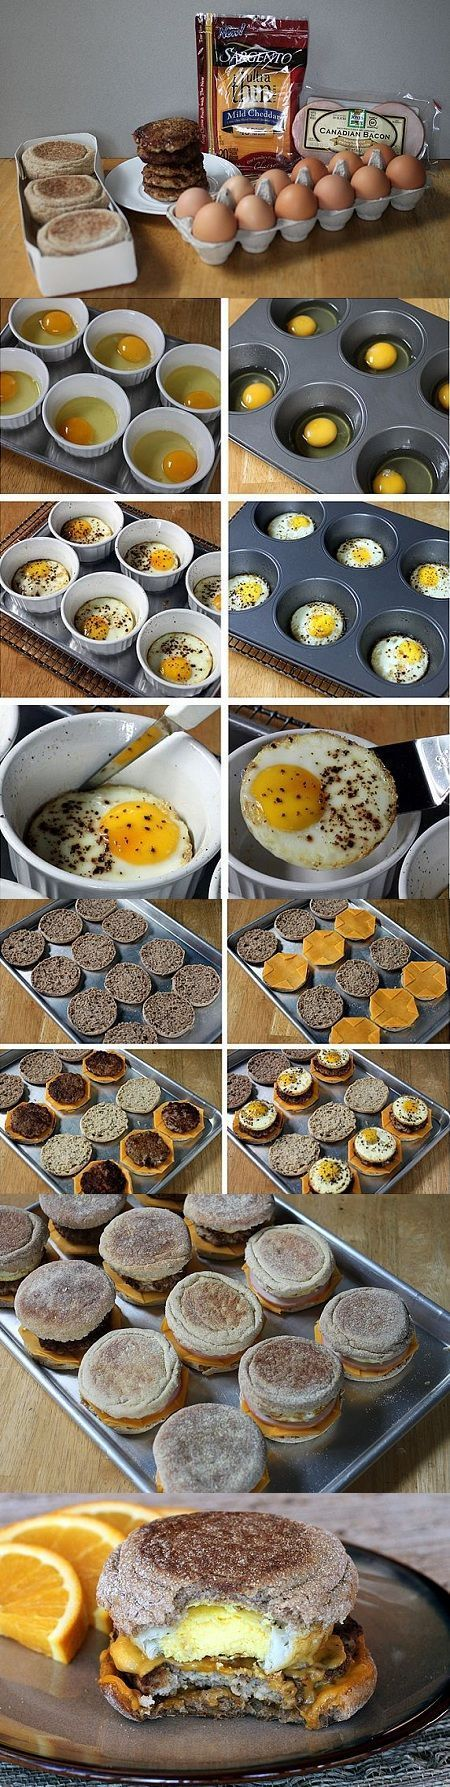 Make-Ahead, Healthy Egg McMuffin Copycats -- A grab-and-go breakfast with reduced calories & fat